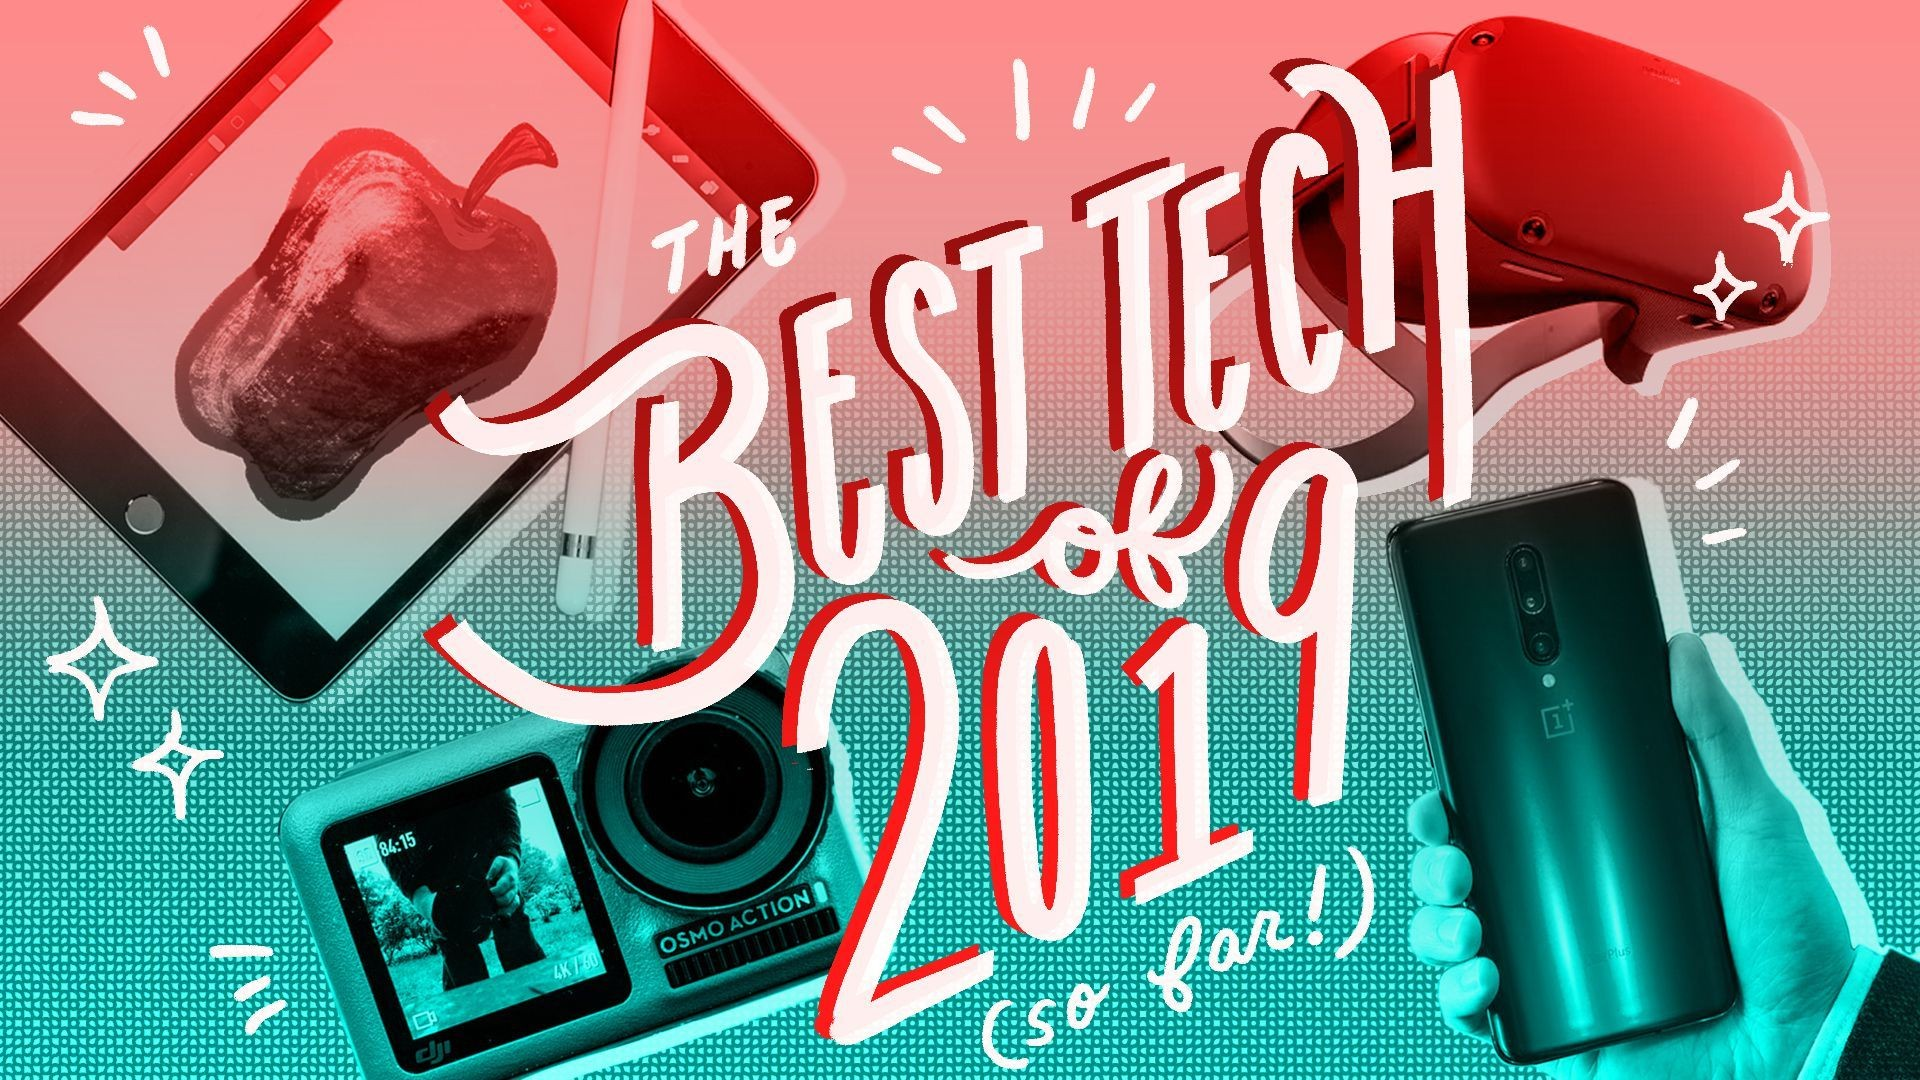 The Best of 2019 (So Far) - cover